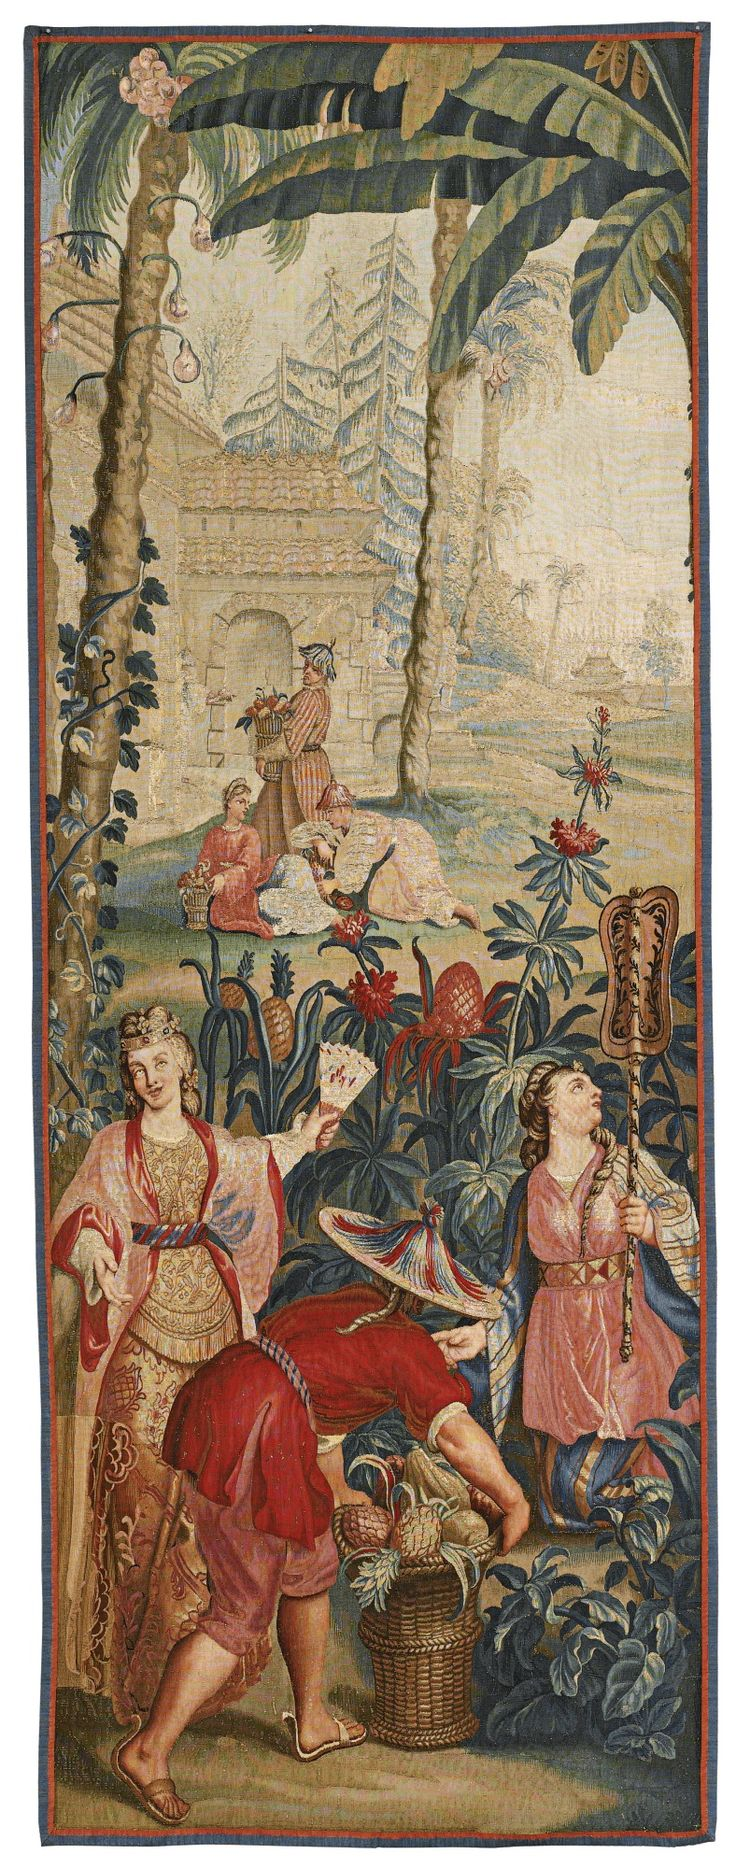 "A FRENCH CHINOISERIE TAPESTRY PANEL, DEPICTING 'GATHERING PINEAPPLES', FROM A SERIES OF THE EMPEROR OF CHINA, AFTER DESIGNS BY GUY LOUIS VERNANSAL, JEAN-BAPTISTE BELIN DE FONTENAY, AND ""BAPTISTE"" MONNOYER  SECOND QUARTER 18TH CENTURY, BEAUVAIS"